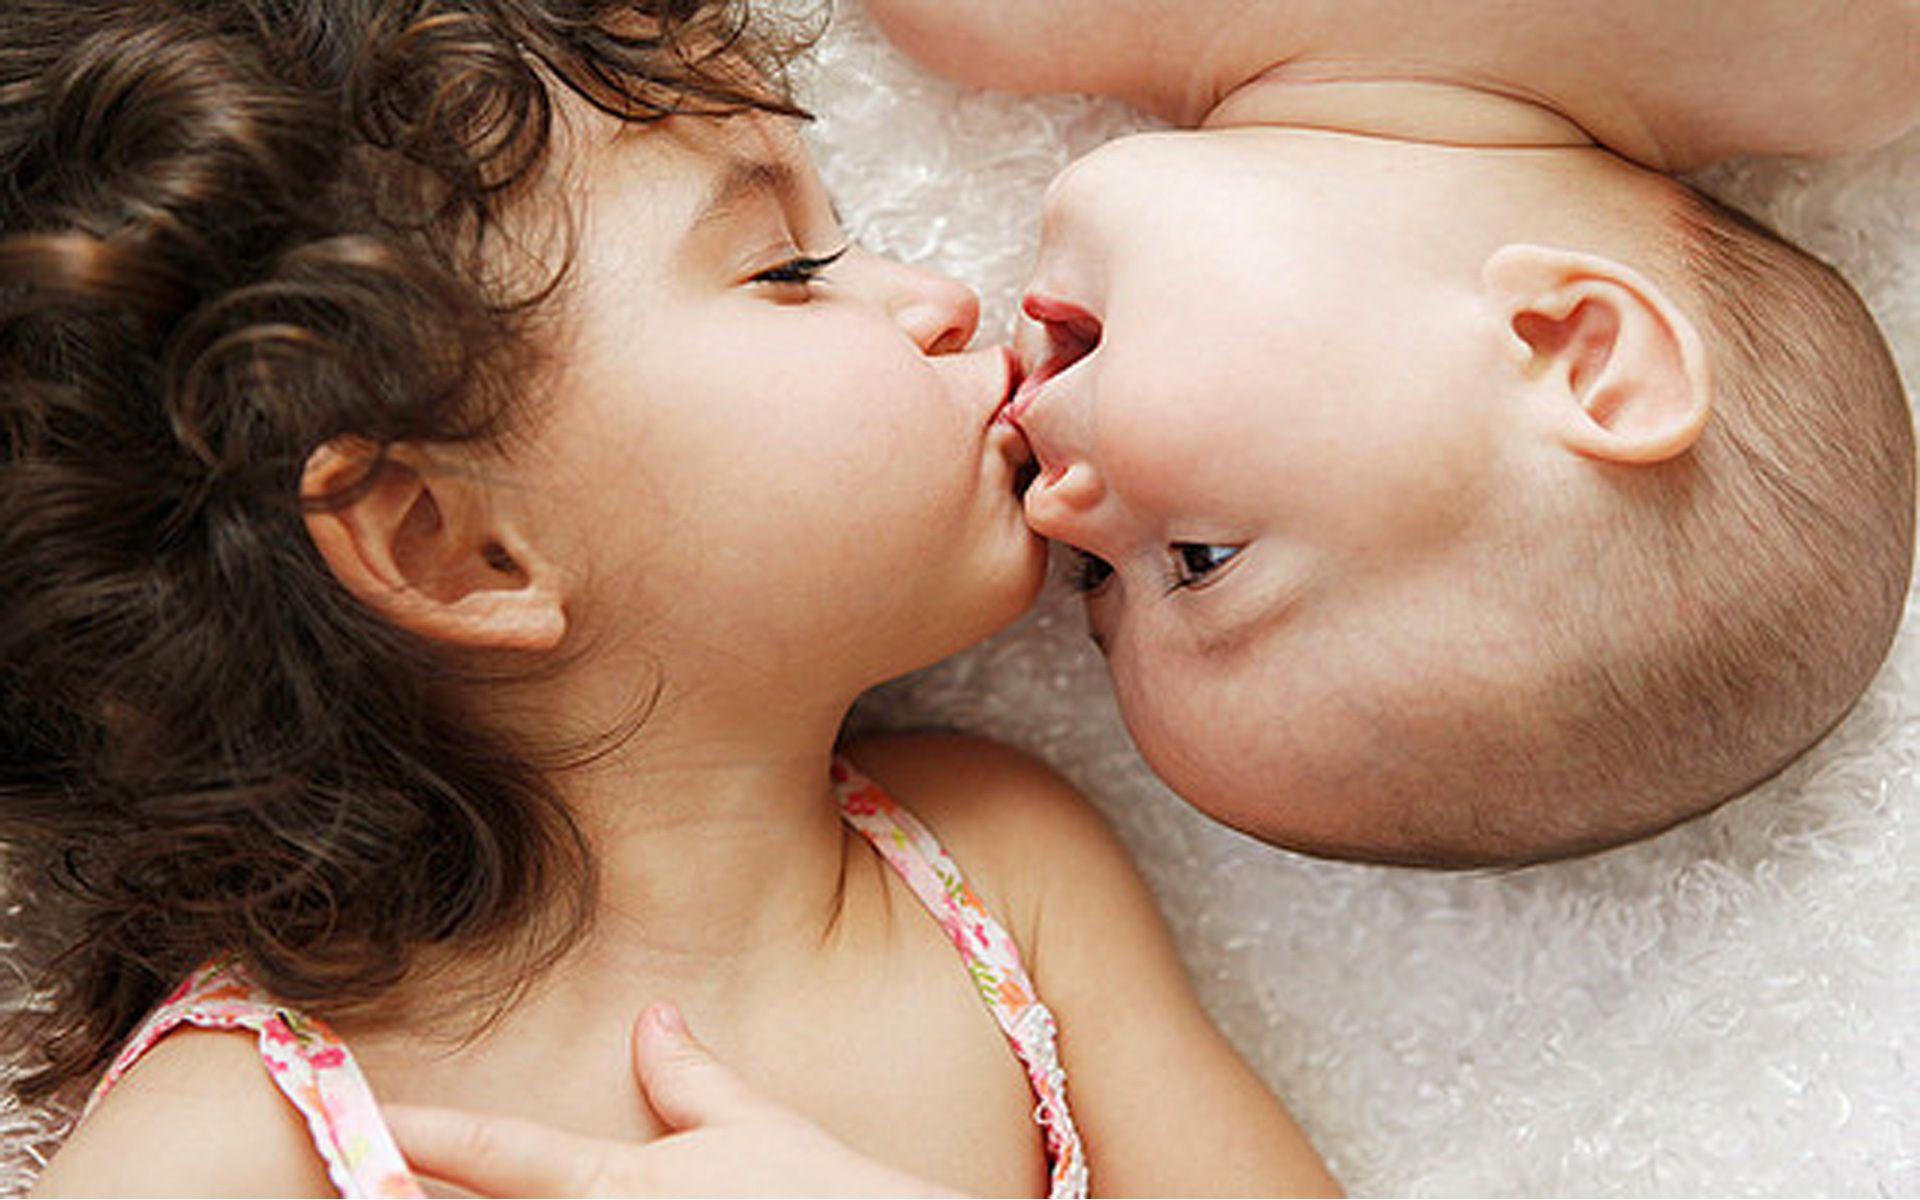 baby lip kiss images hd bedwalls co